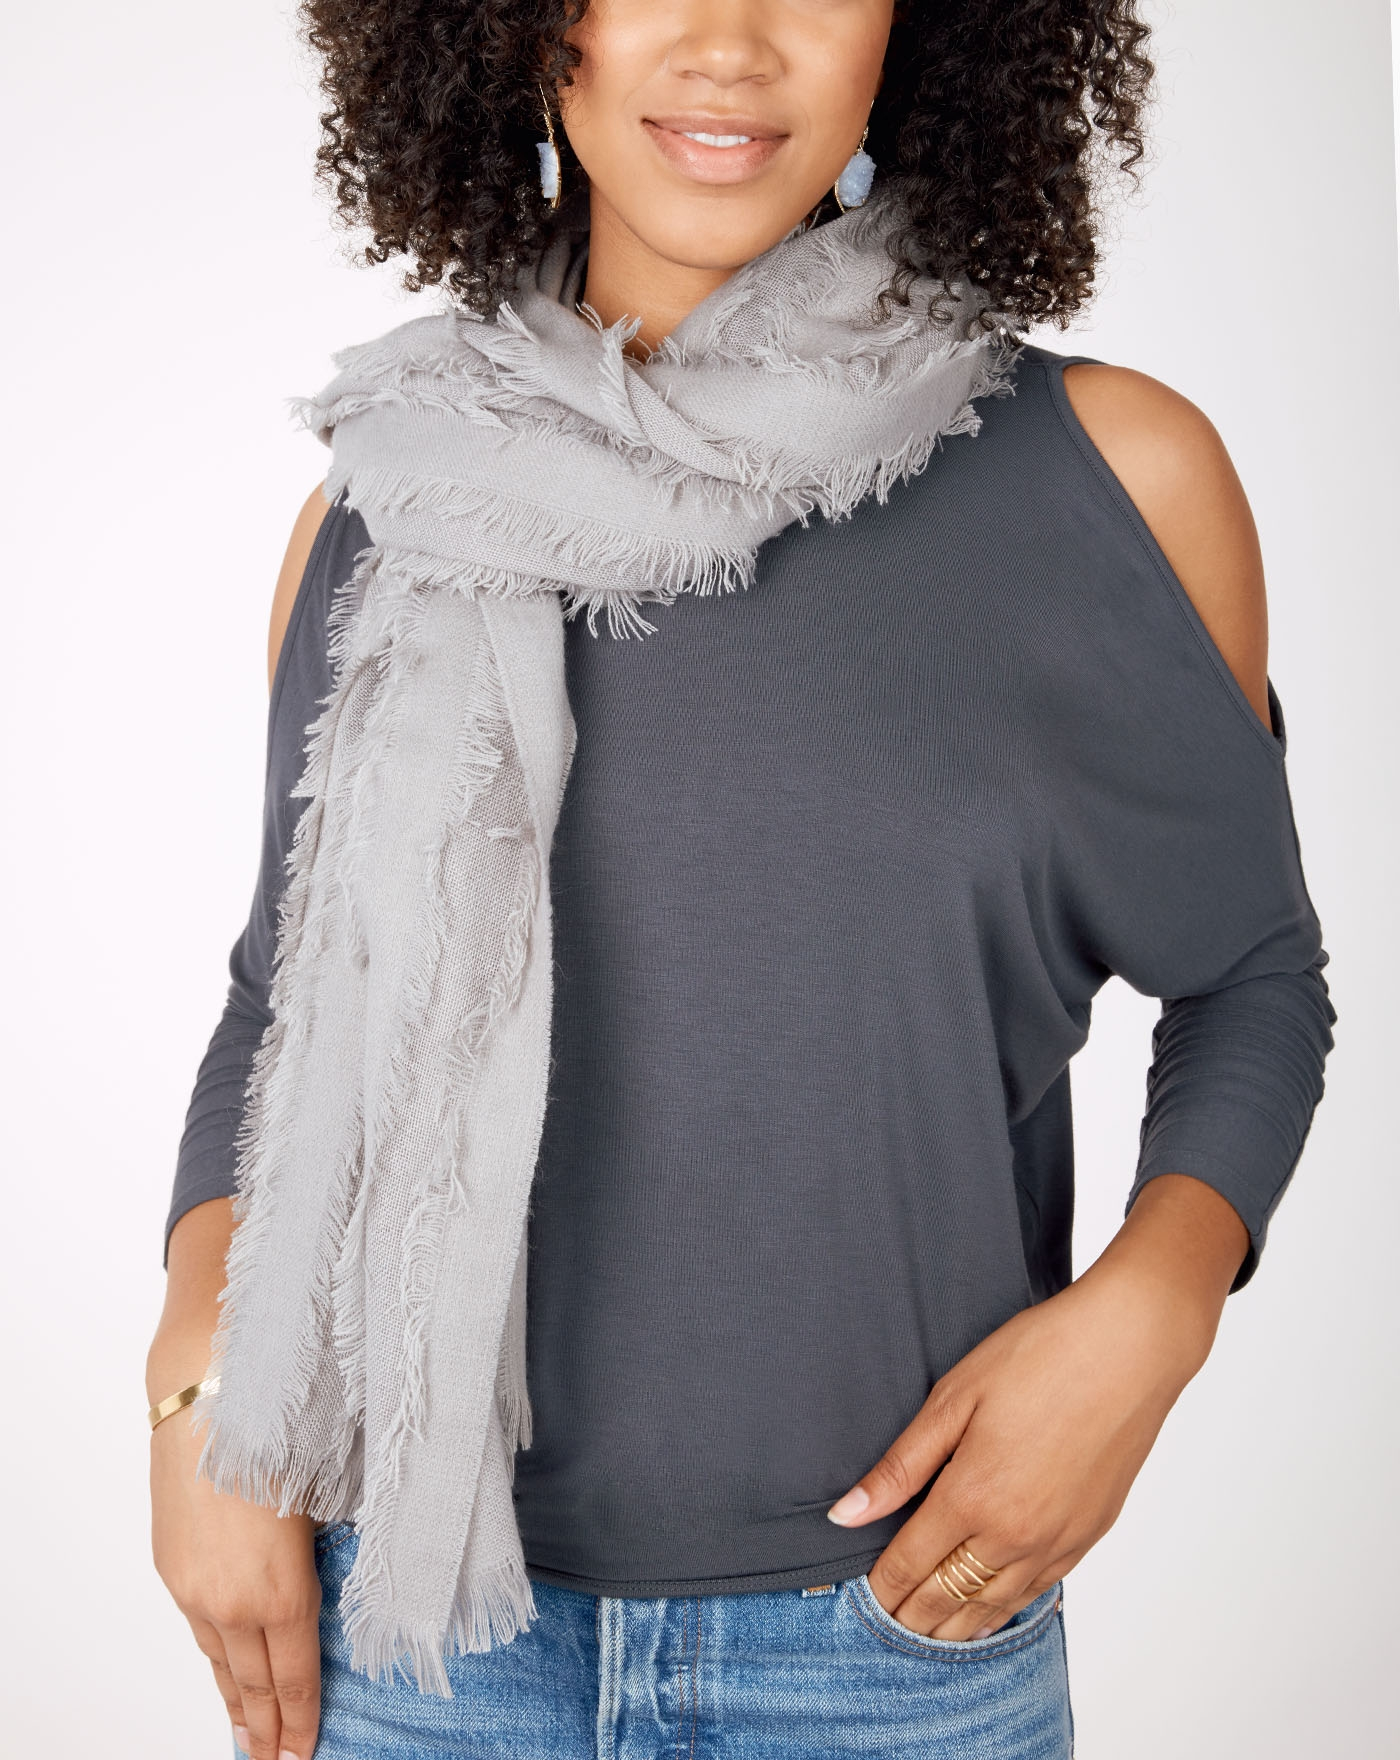 1. The St. Germain Scarf - It's starting to get cooler which means we can finally reach for our new favorite scarf, the St. Germain! With a subdued gray color and baby fringe, you can't go wrong. As the softest scarf we've ever felt,this is one fall staple we won't be without.